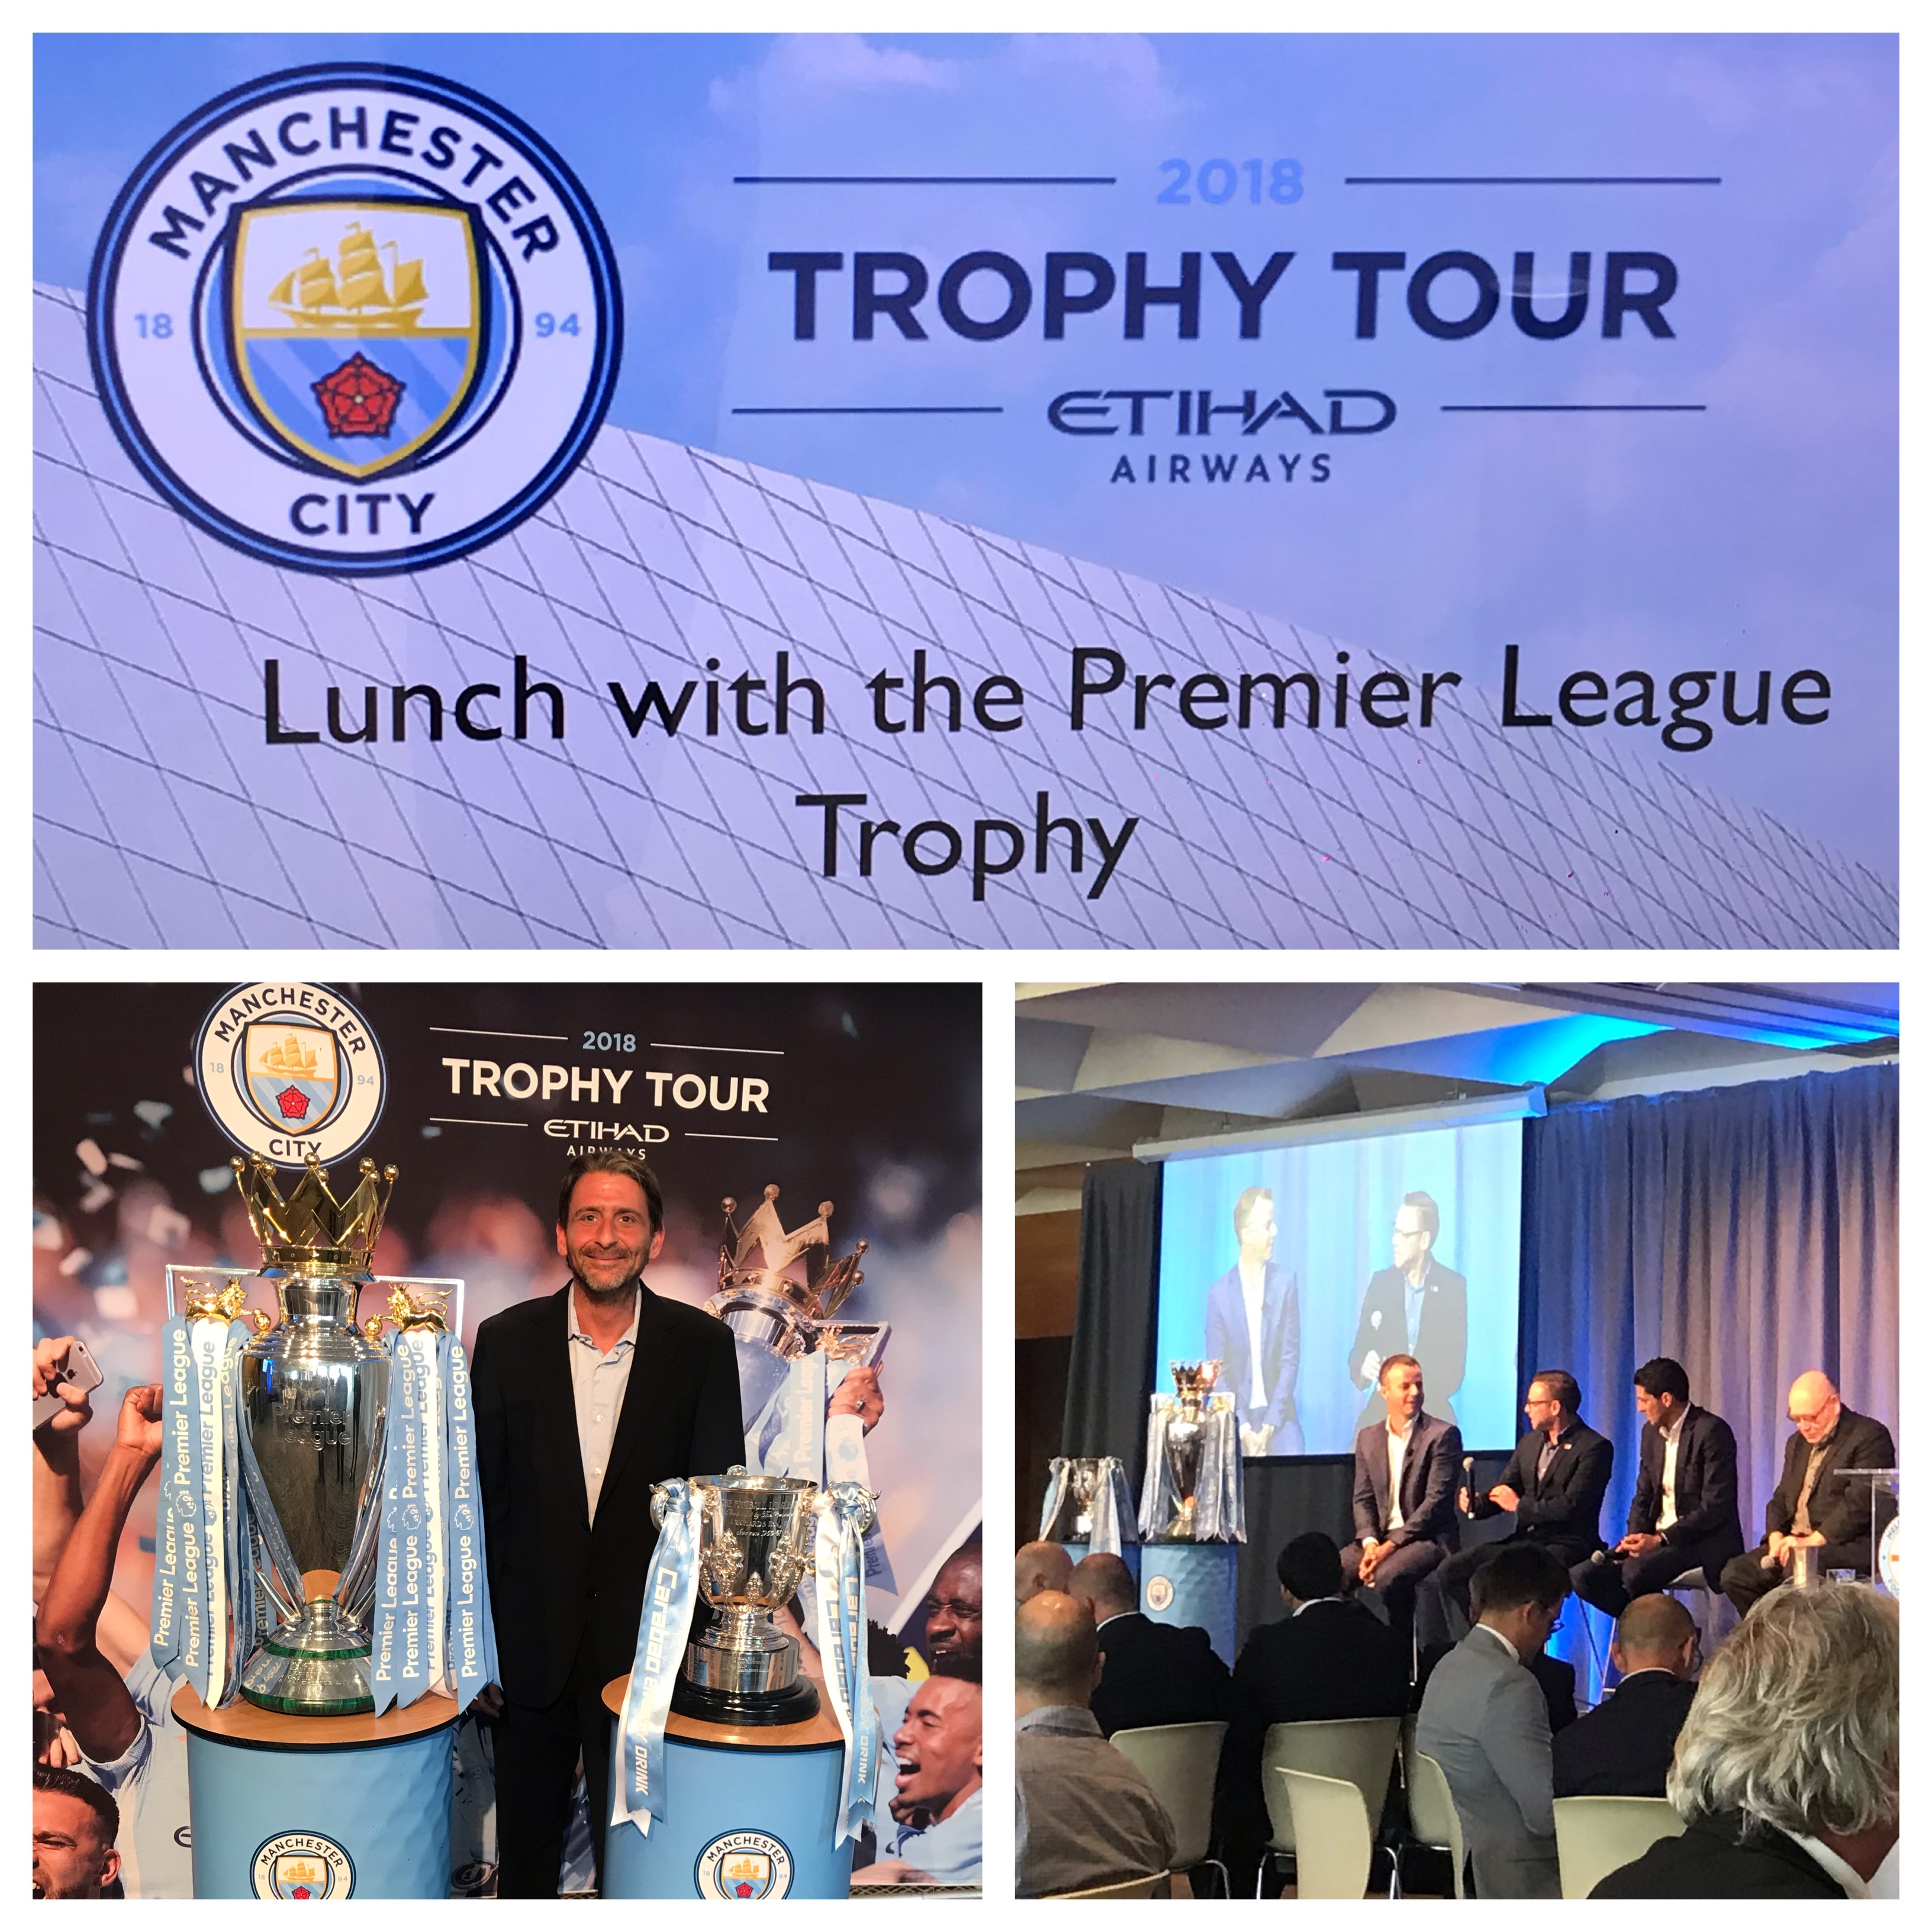 Lunch with the Premier League Trophy